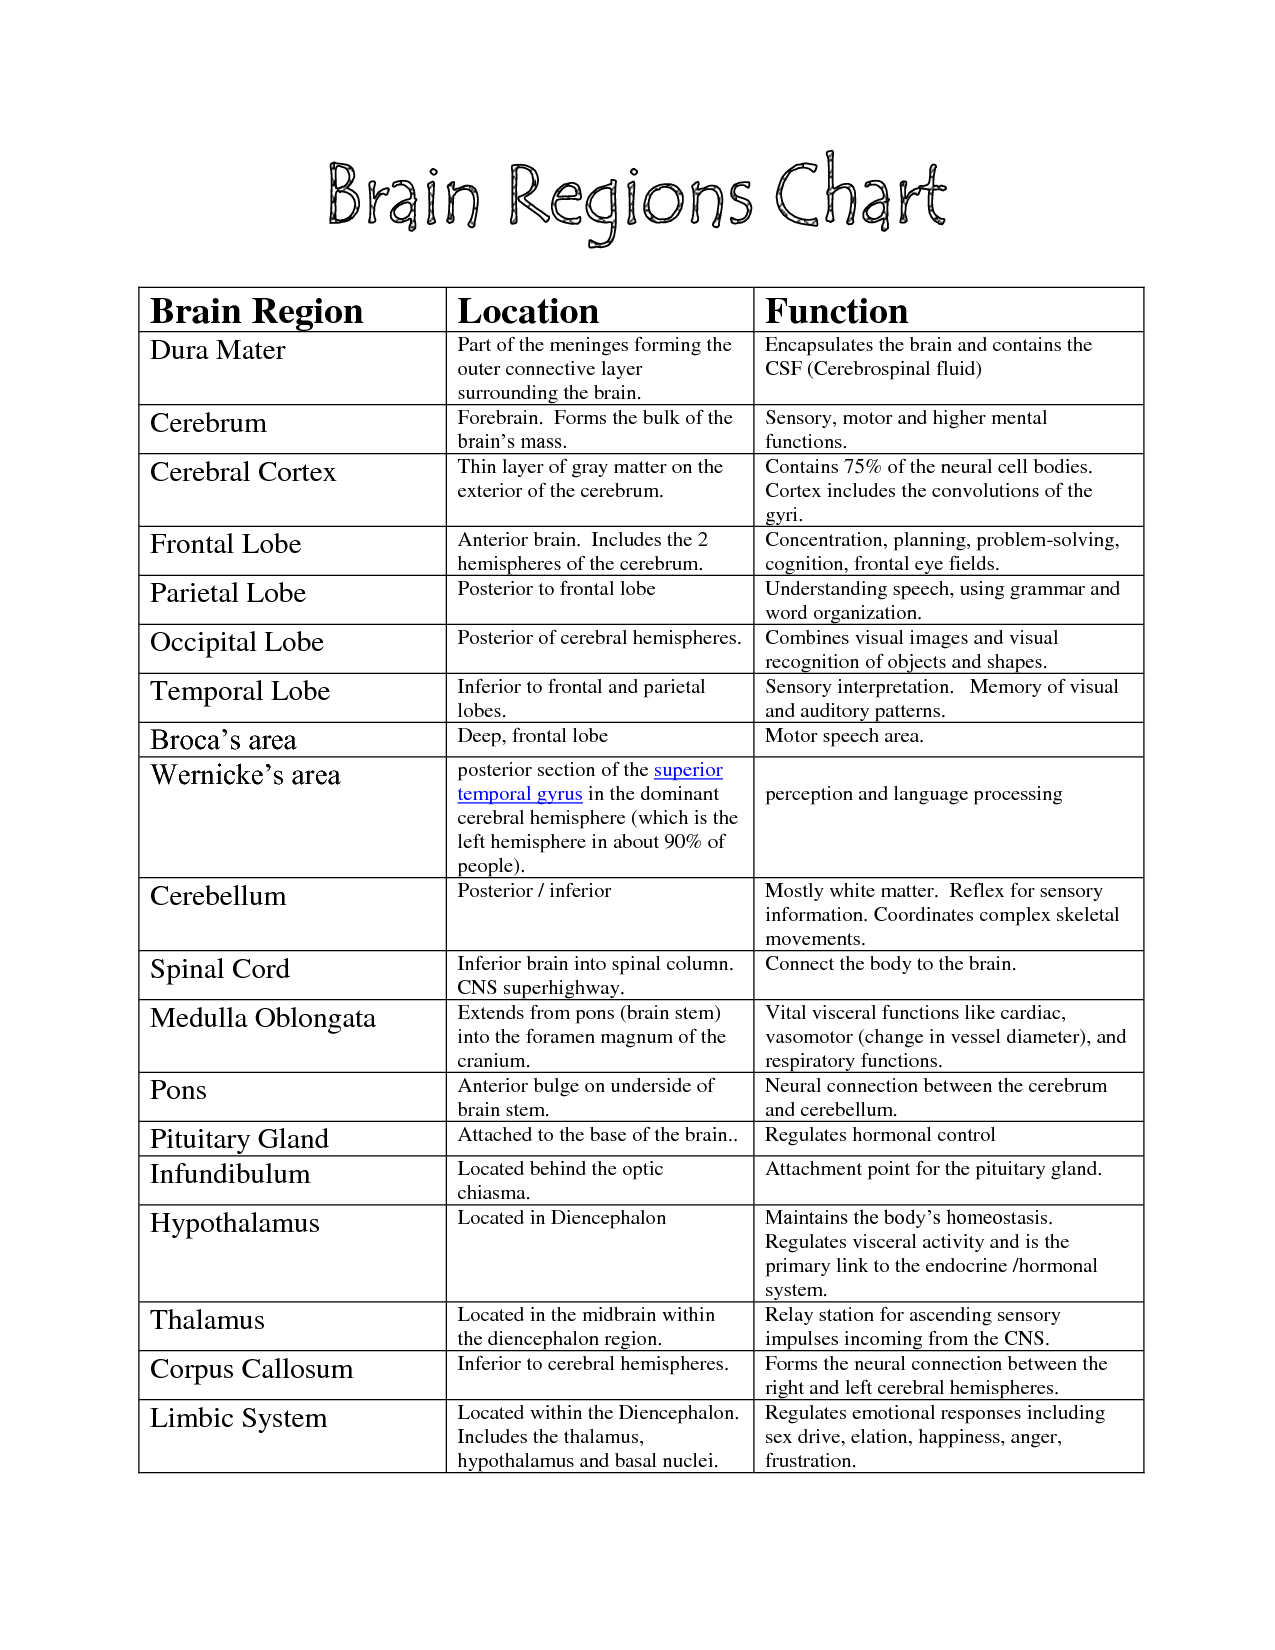 brain functions chart brain parts science pinterest brain chart and therapy. Black Bedroom Furniture Sets. Home Design Ideas